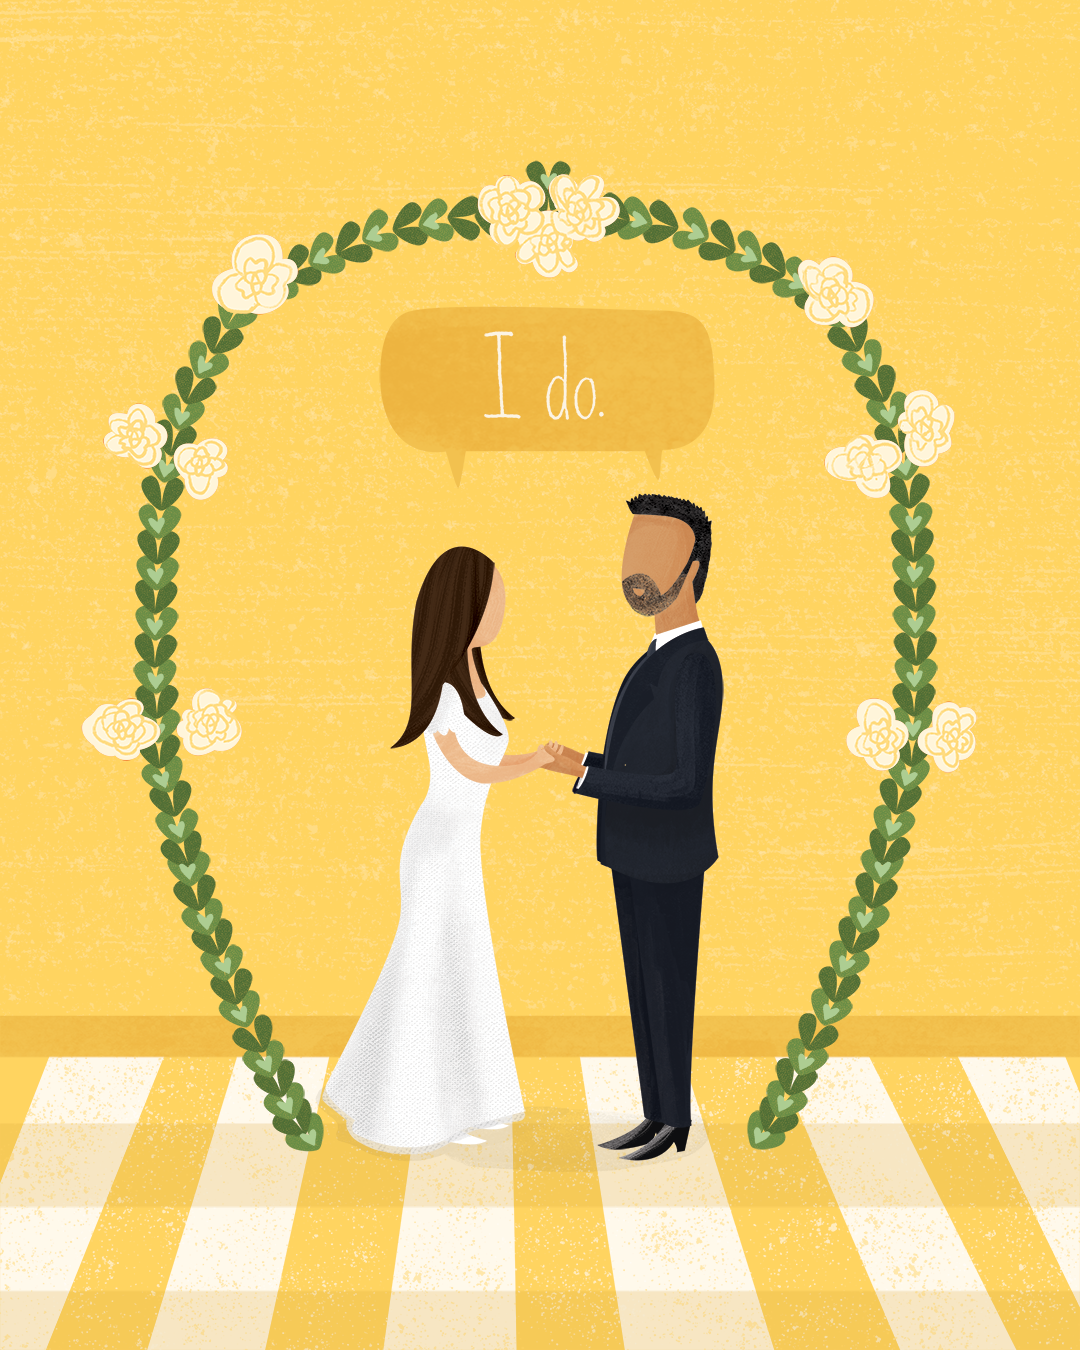 natalie-marion-wedding-portrait-i-do-flowers-illustration.png